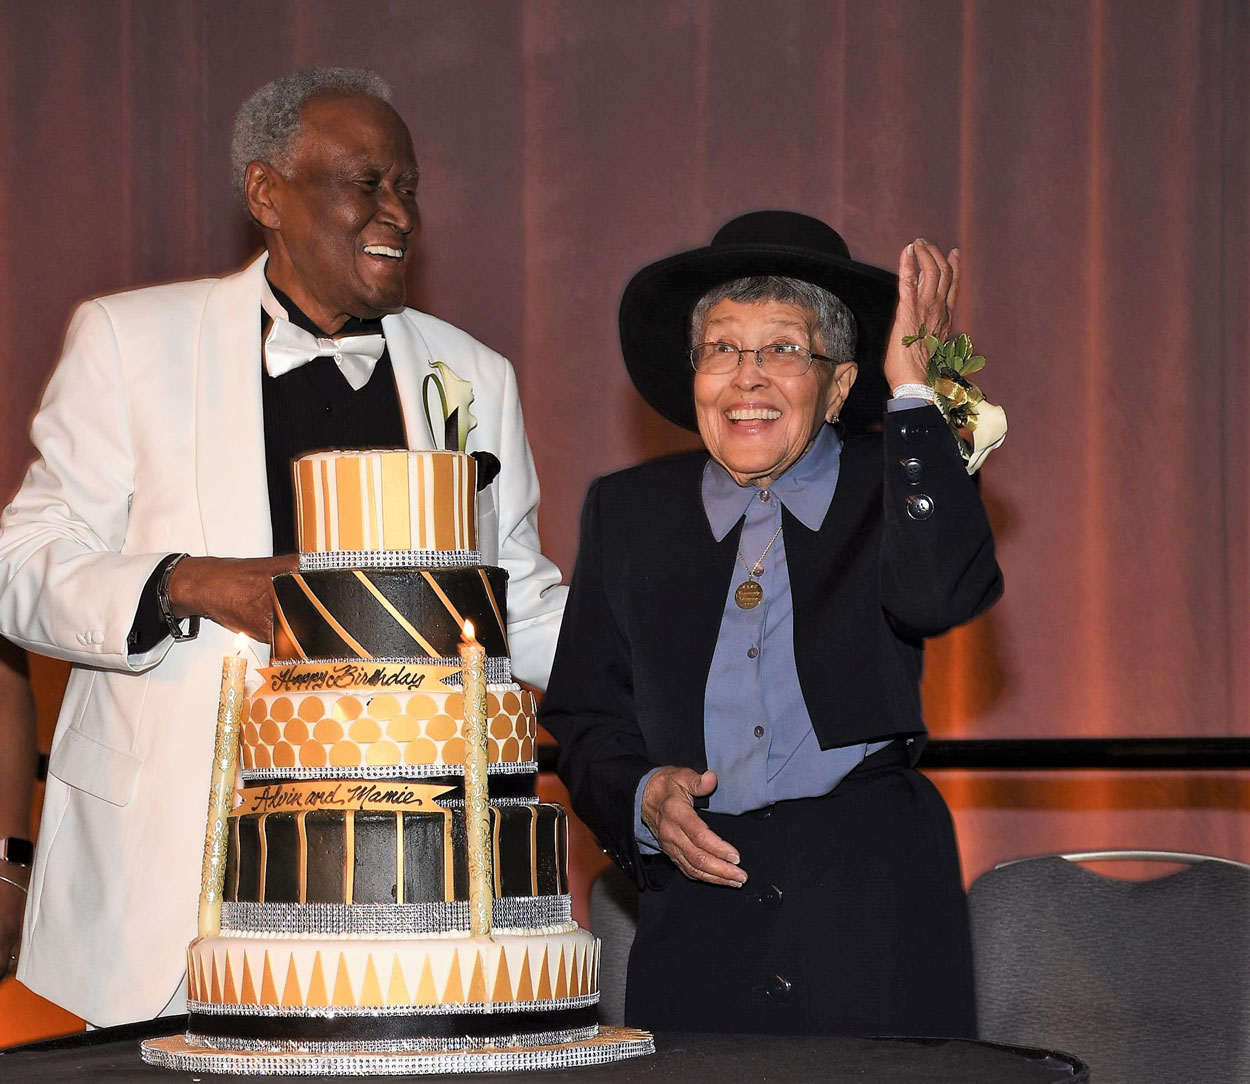 Alvin Brooks and Mamie Hughes share a birthday cake